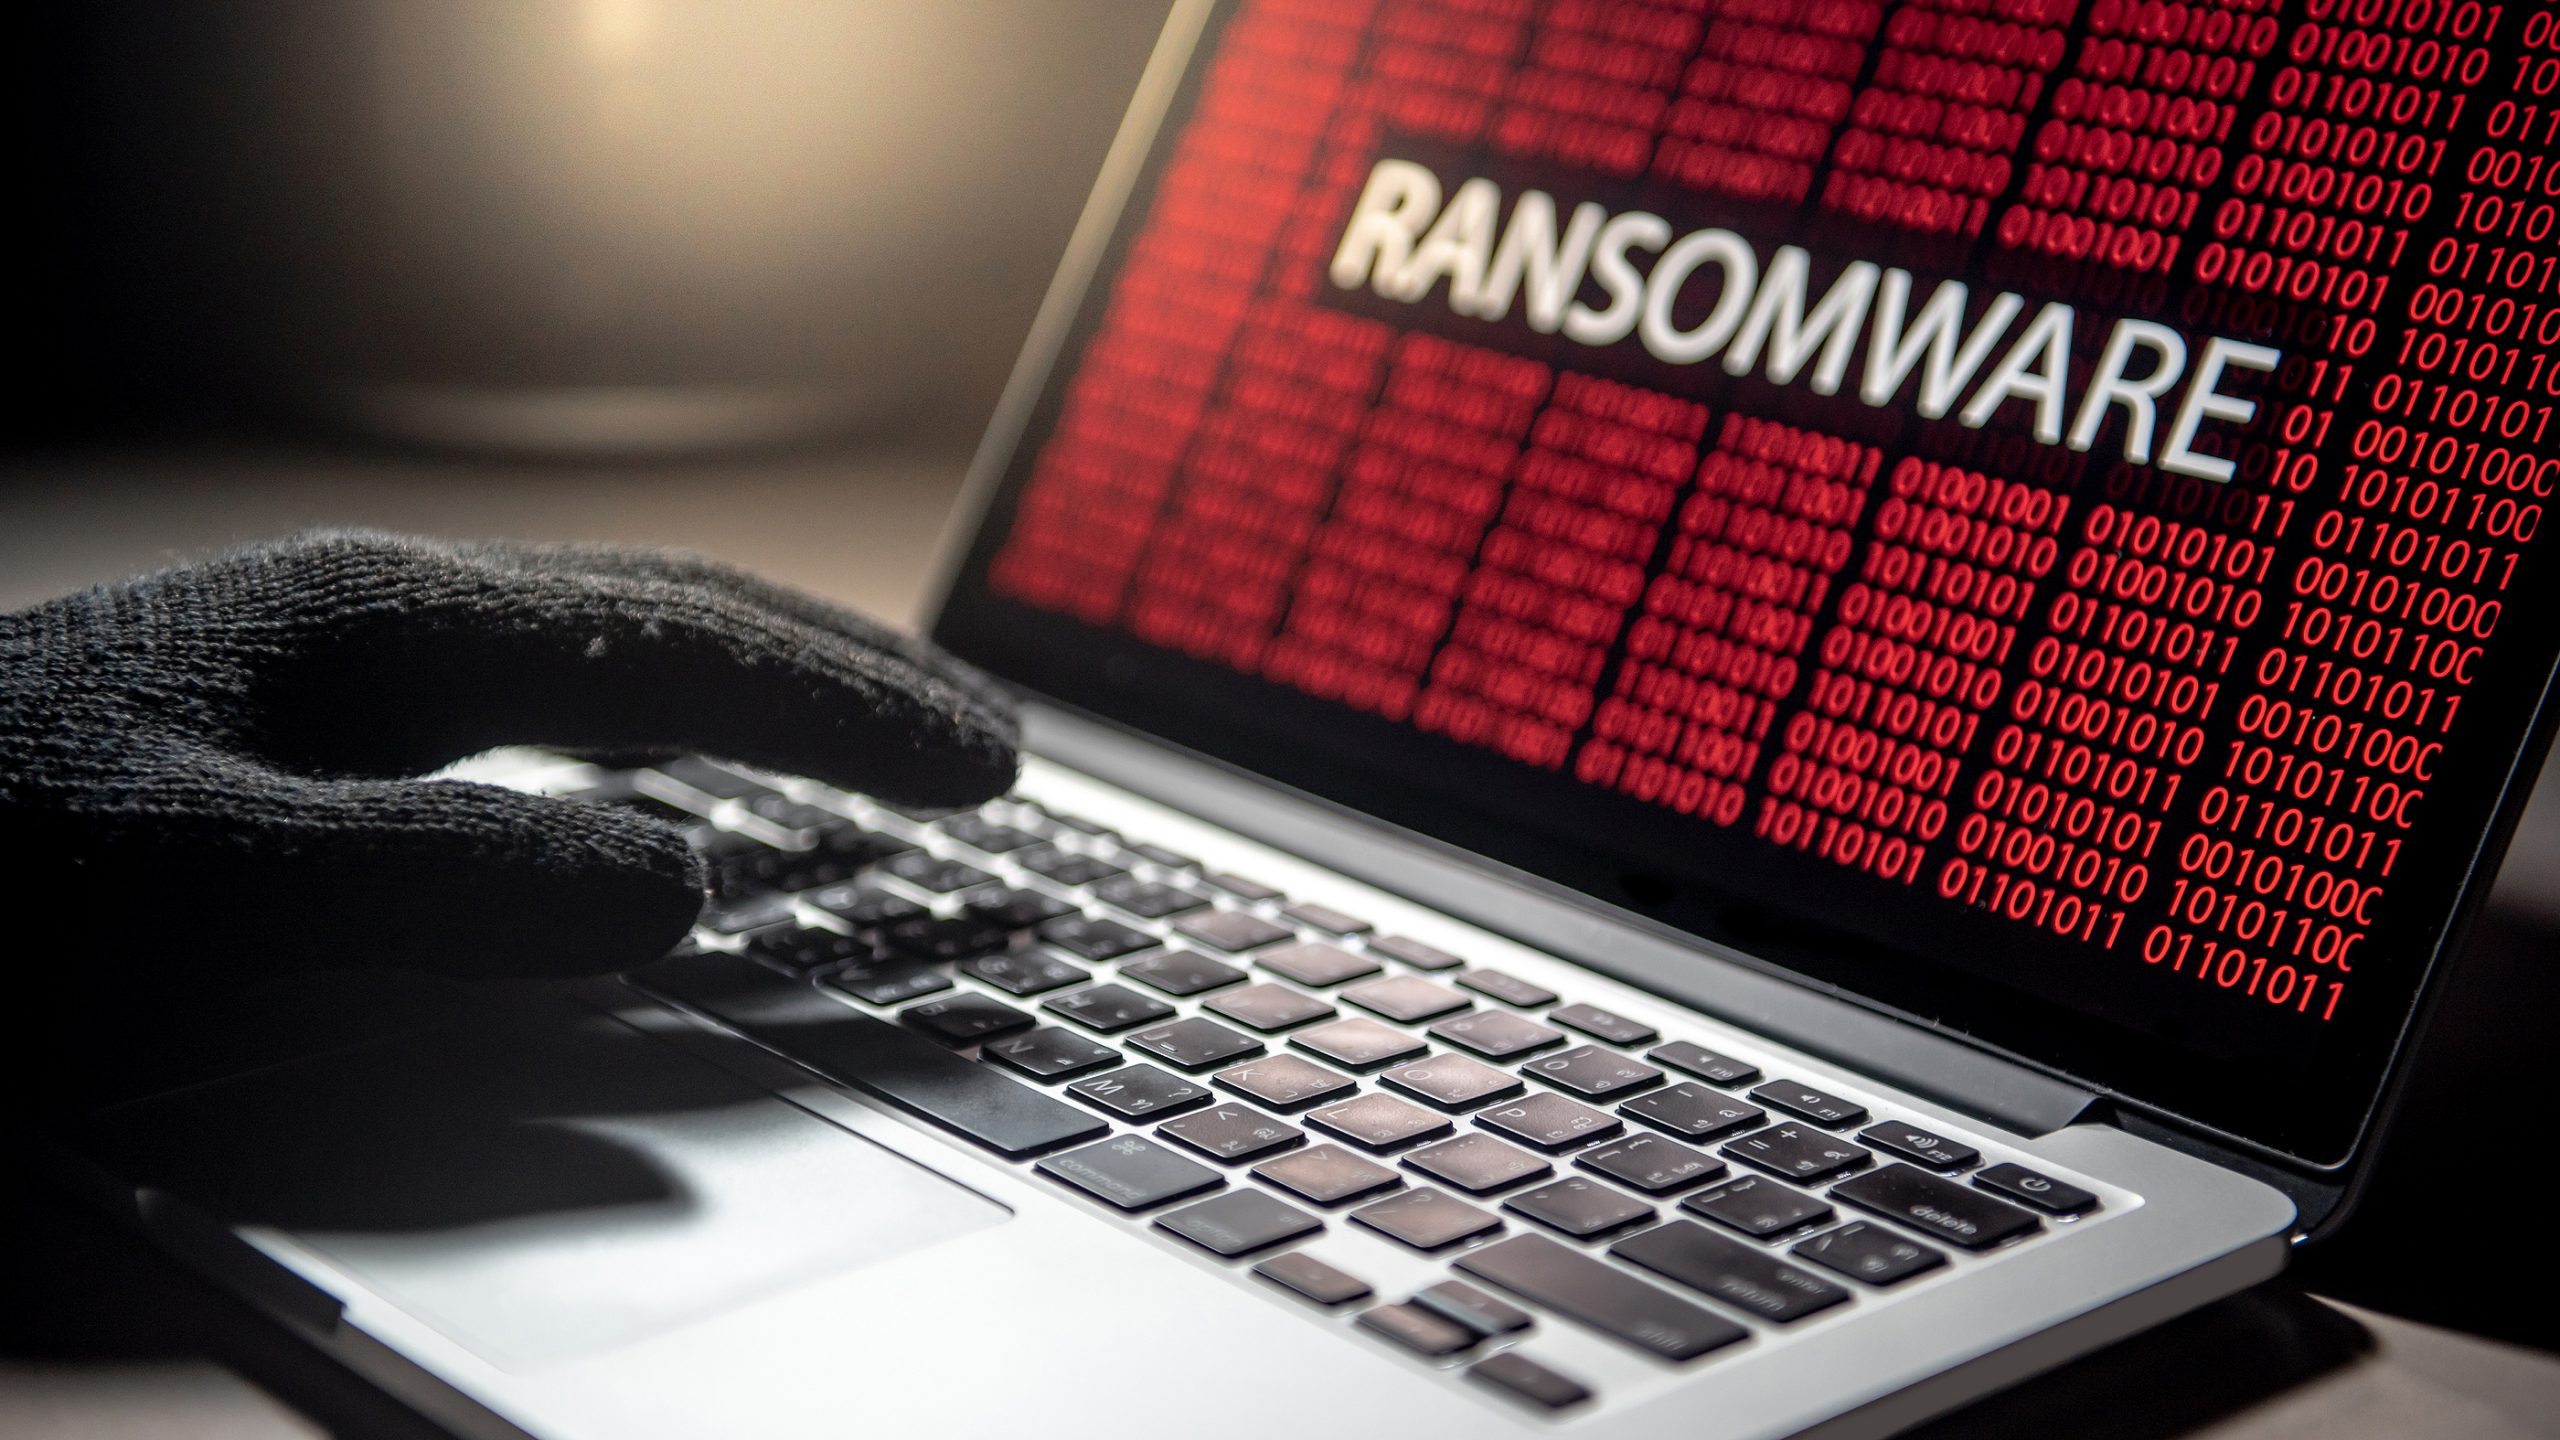 What Is Ransomware as a Service (RaaS) and Why Is it Fueling Nearly 2/3 of Attacks?